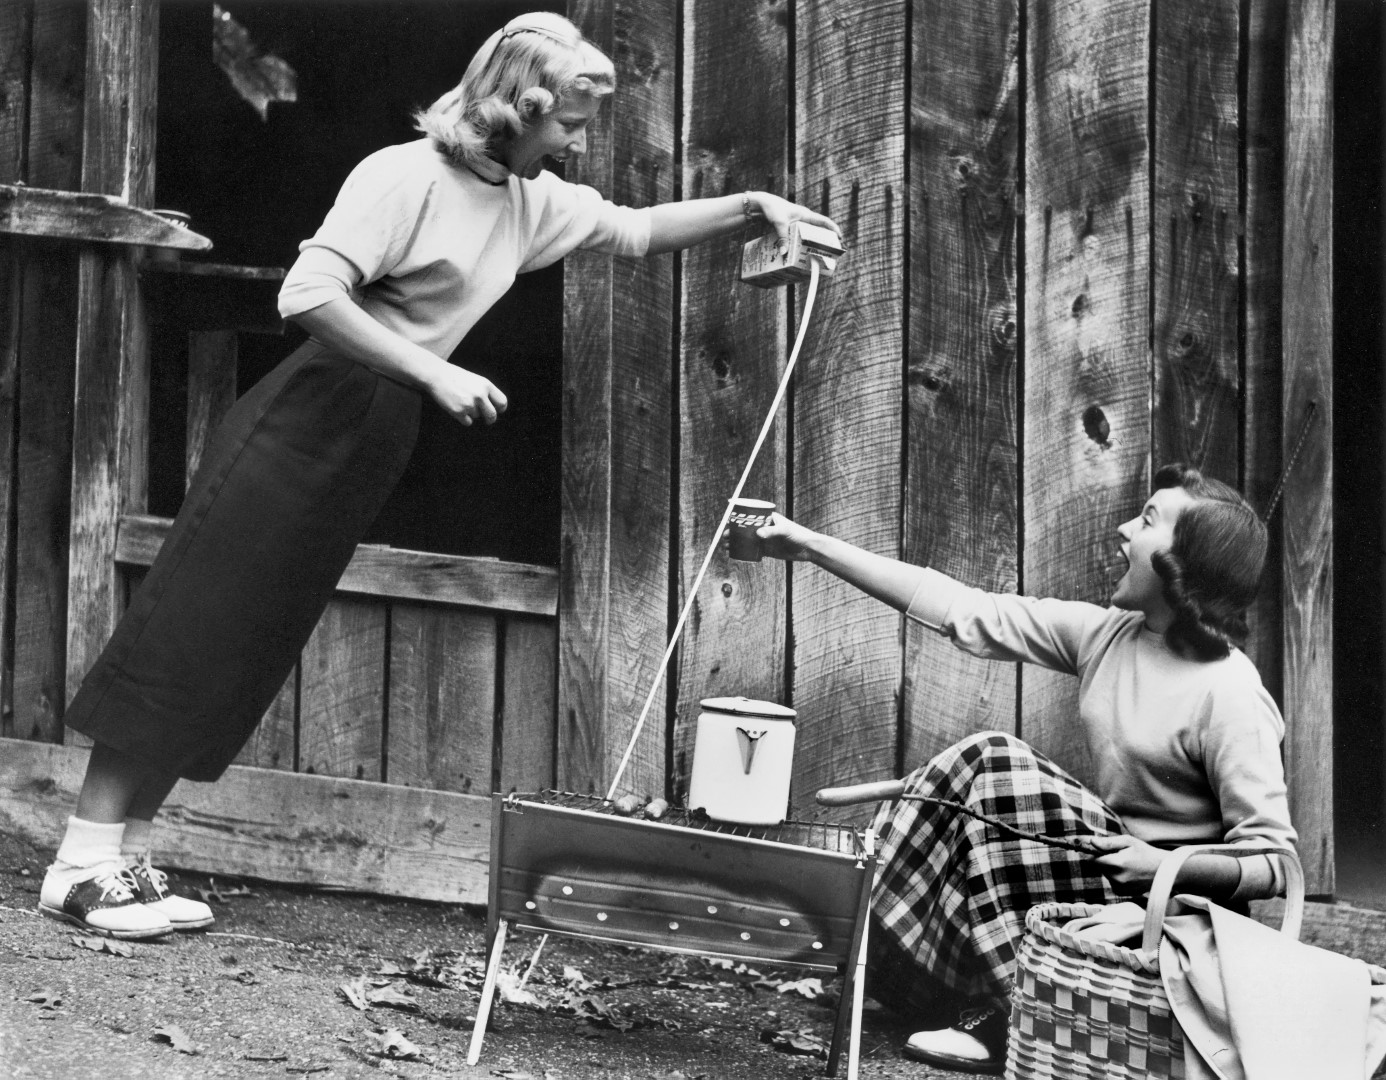 Pouring Milk at the Wonder Spot, 1957